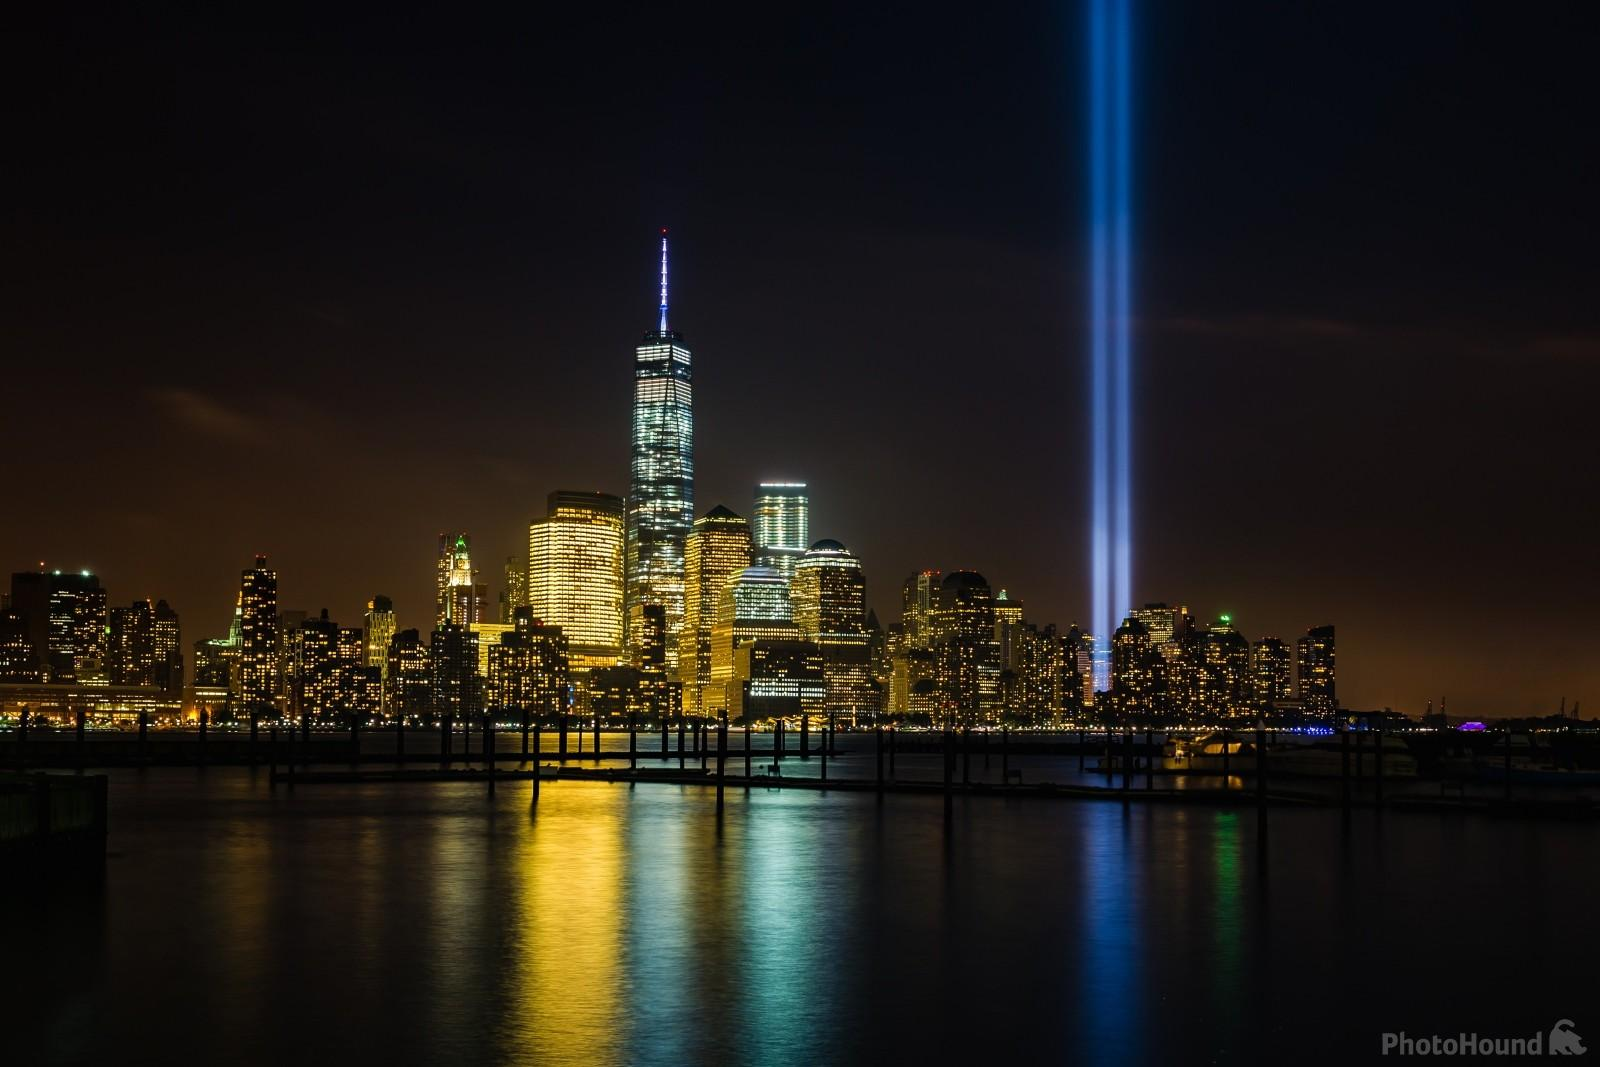 Lower Manhattan skyscrapers from Jersey, captured with the Tribute in Light